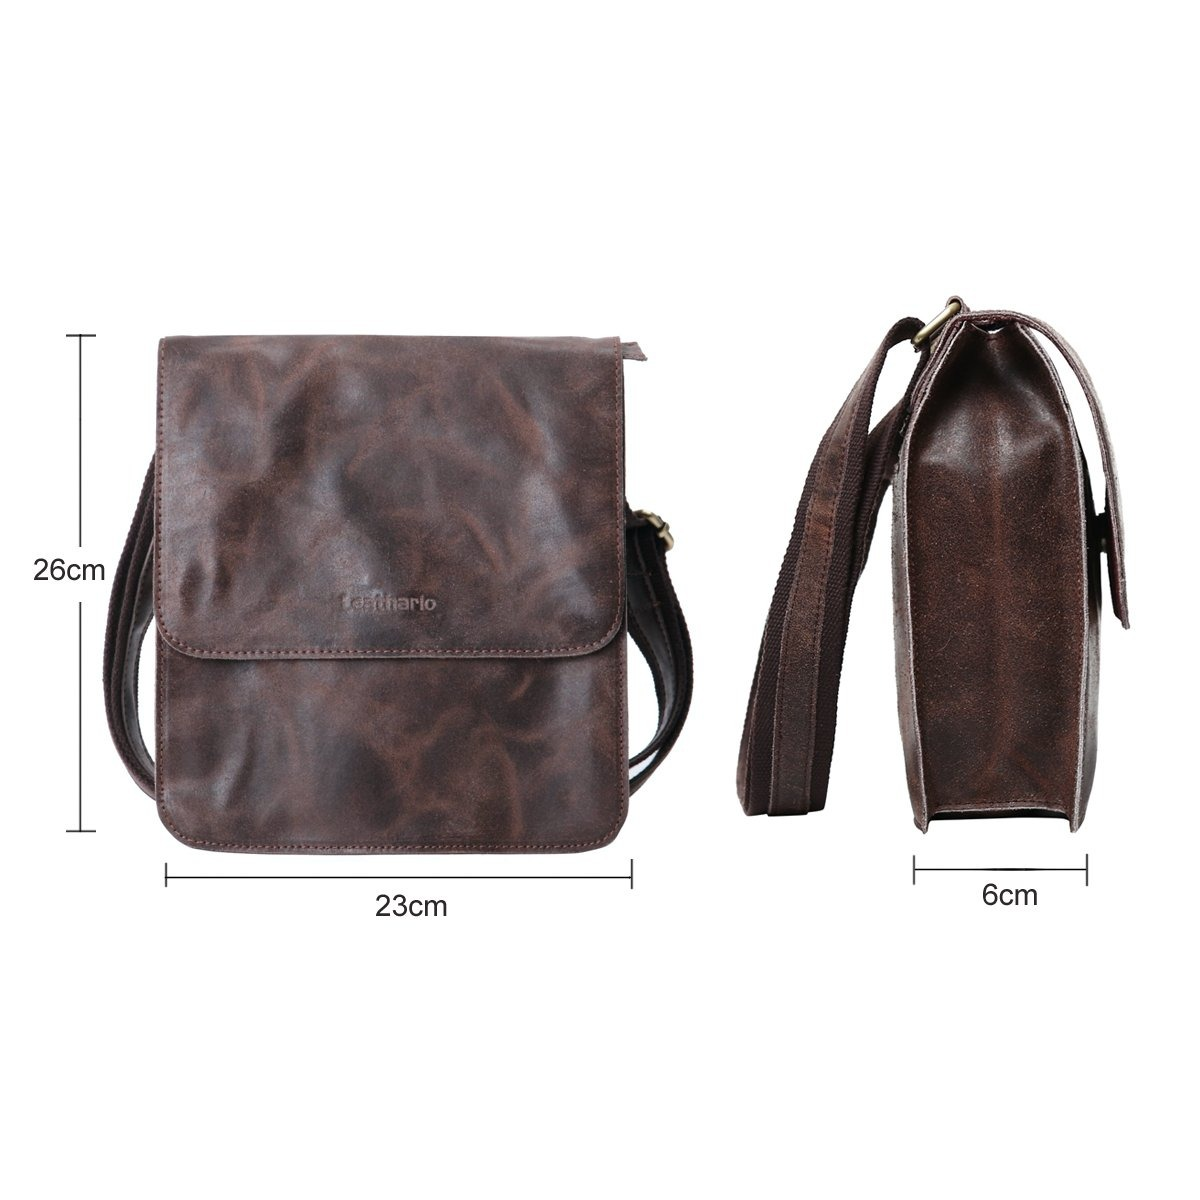 bfc3e8b7a9a leathario leather shoulder bag men s retro leather mess... Cargando zoom.